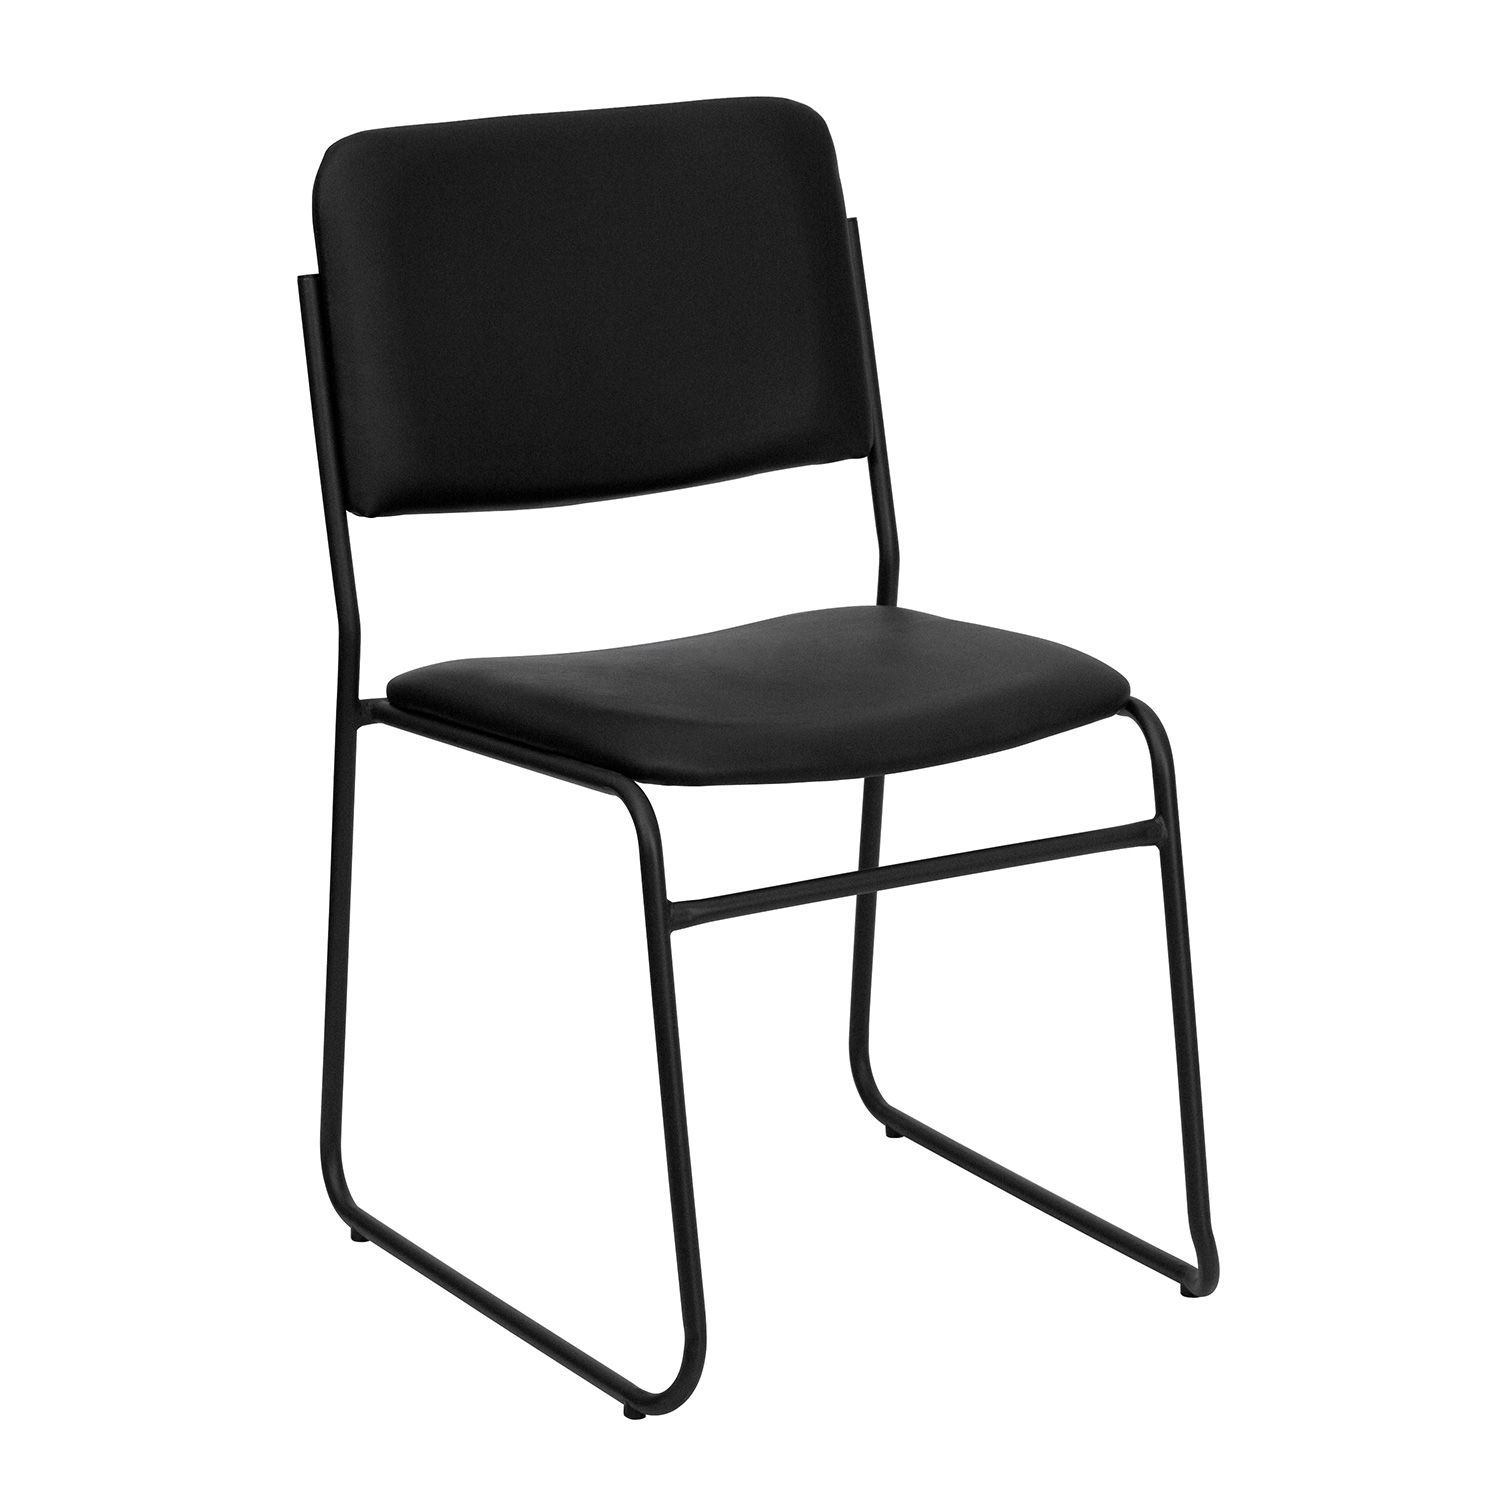 Hercules - Vinyl Stacking Chair with Sled Base - Black - Sam's Club